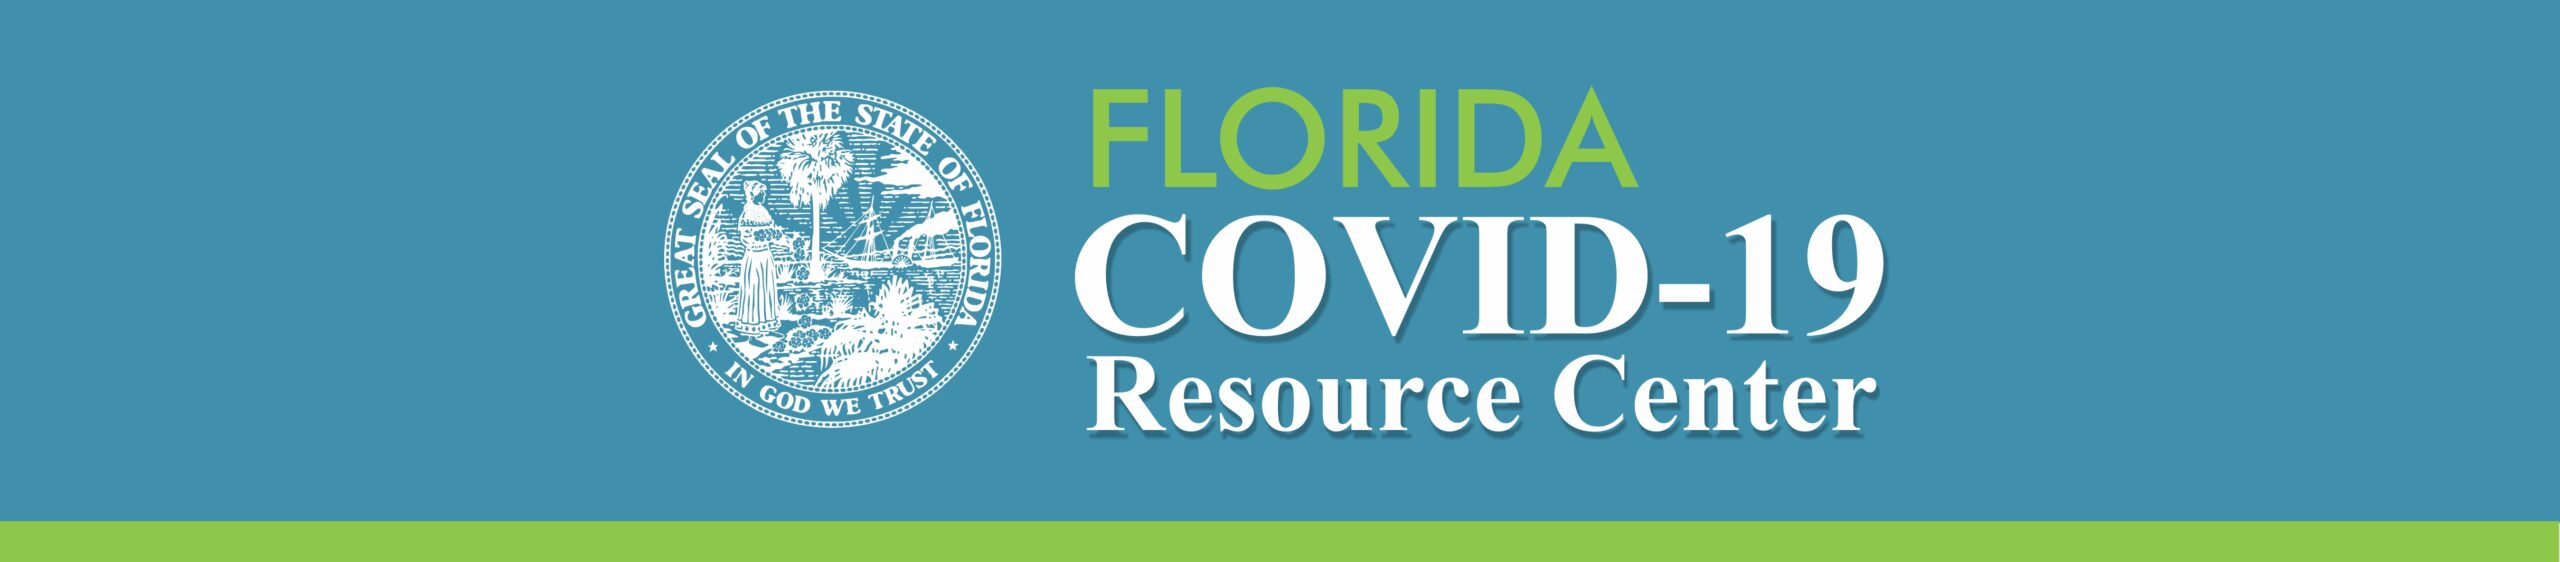 Click to view Florida COVID-19 resources.